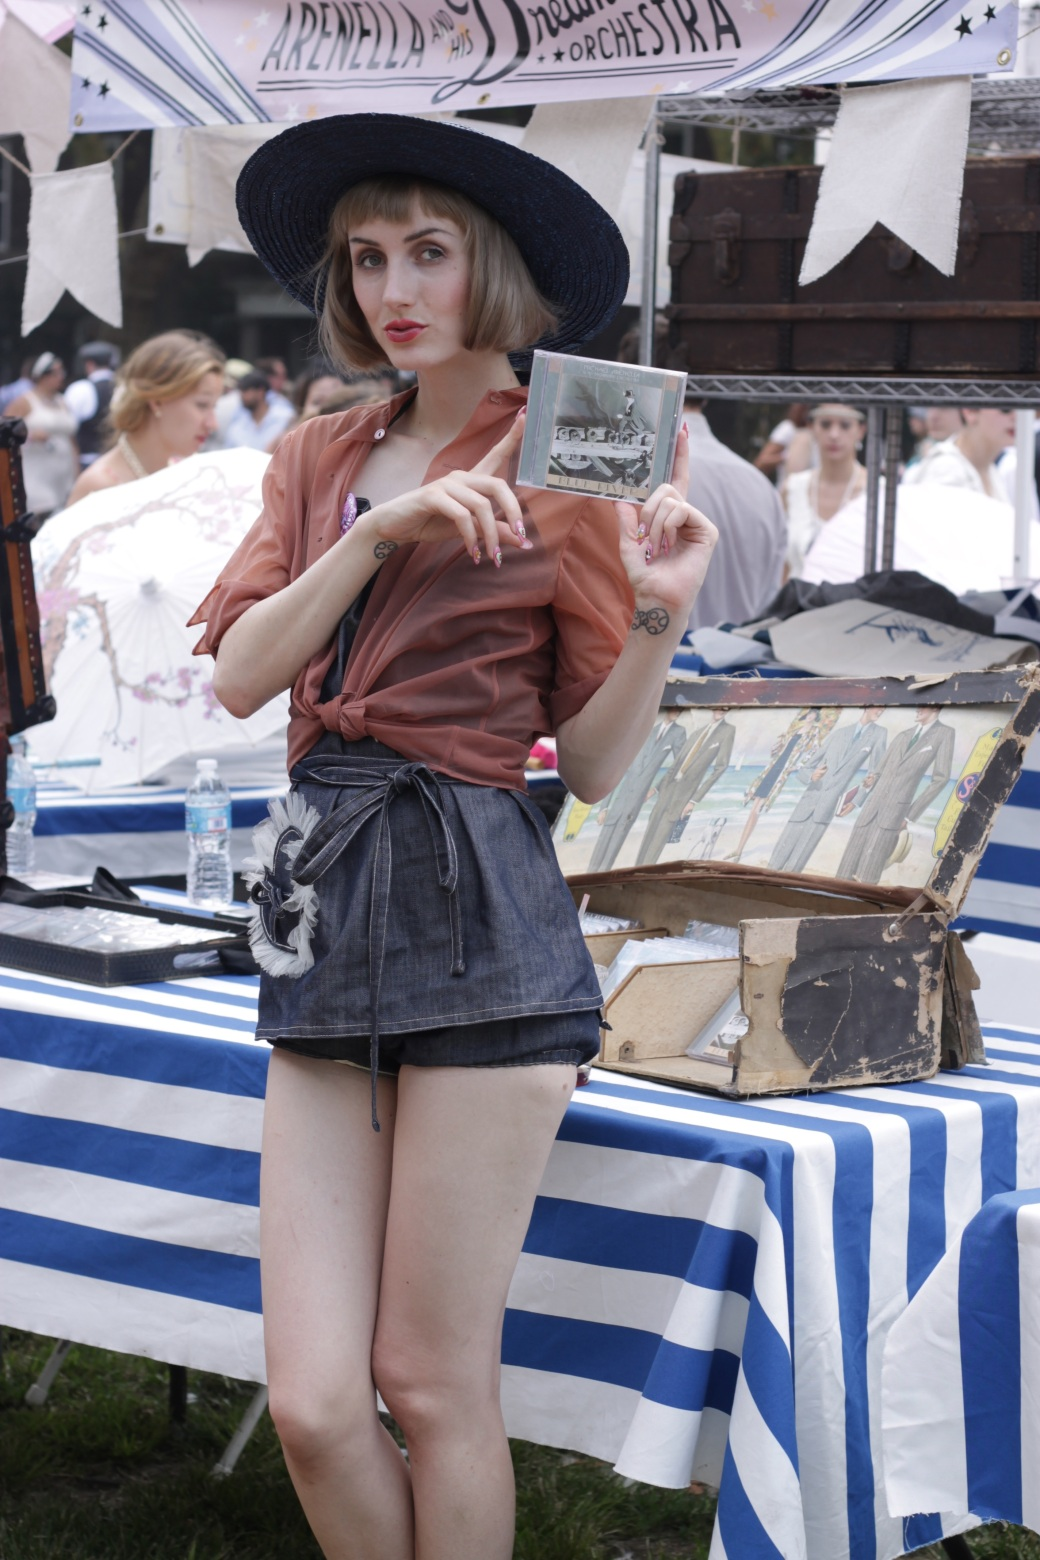 new york city governors island jazz age lawn party august 17 2014 102